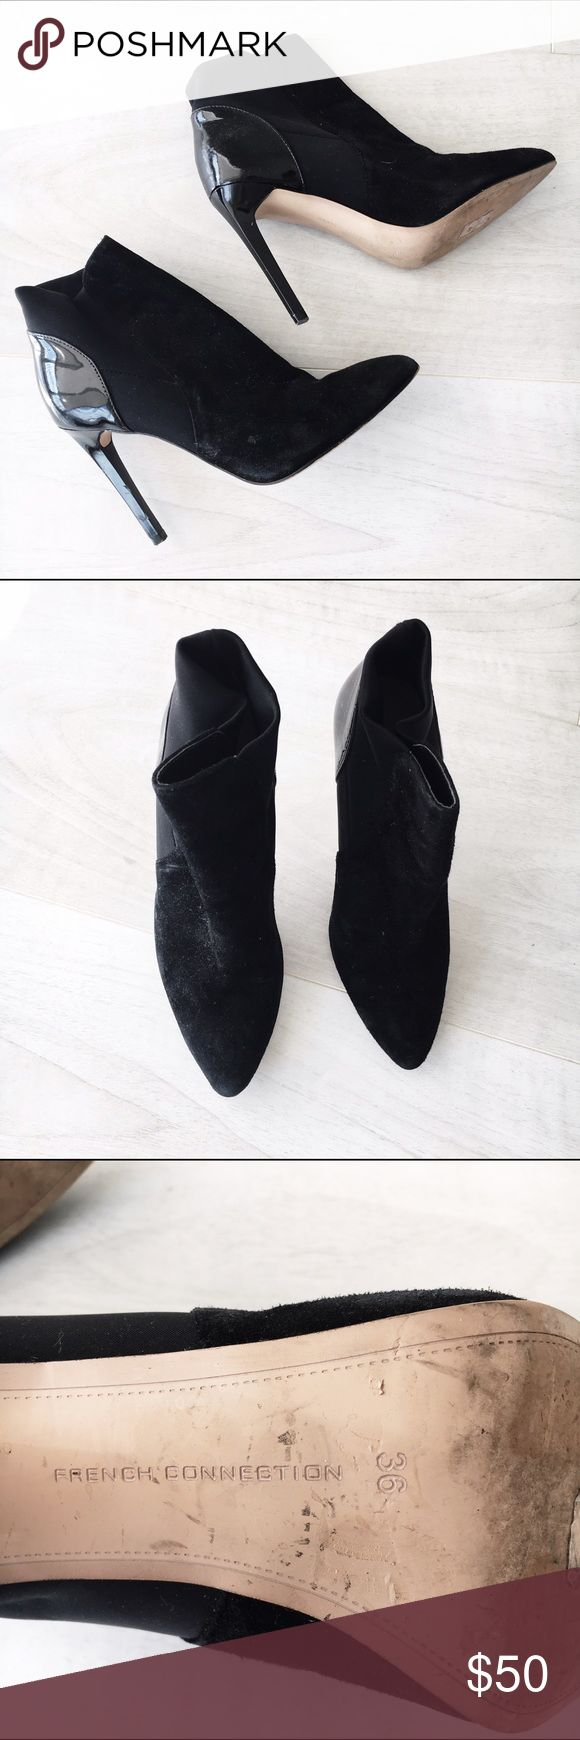 French Connection Suede + Patten Leather Booties Booties by French Connection, size 36 (US 6). Love these but couldn't fit my feet in them...I'm normally a 7! Worn once ✨ French Connection Shoes Ankle Boots & Booties